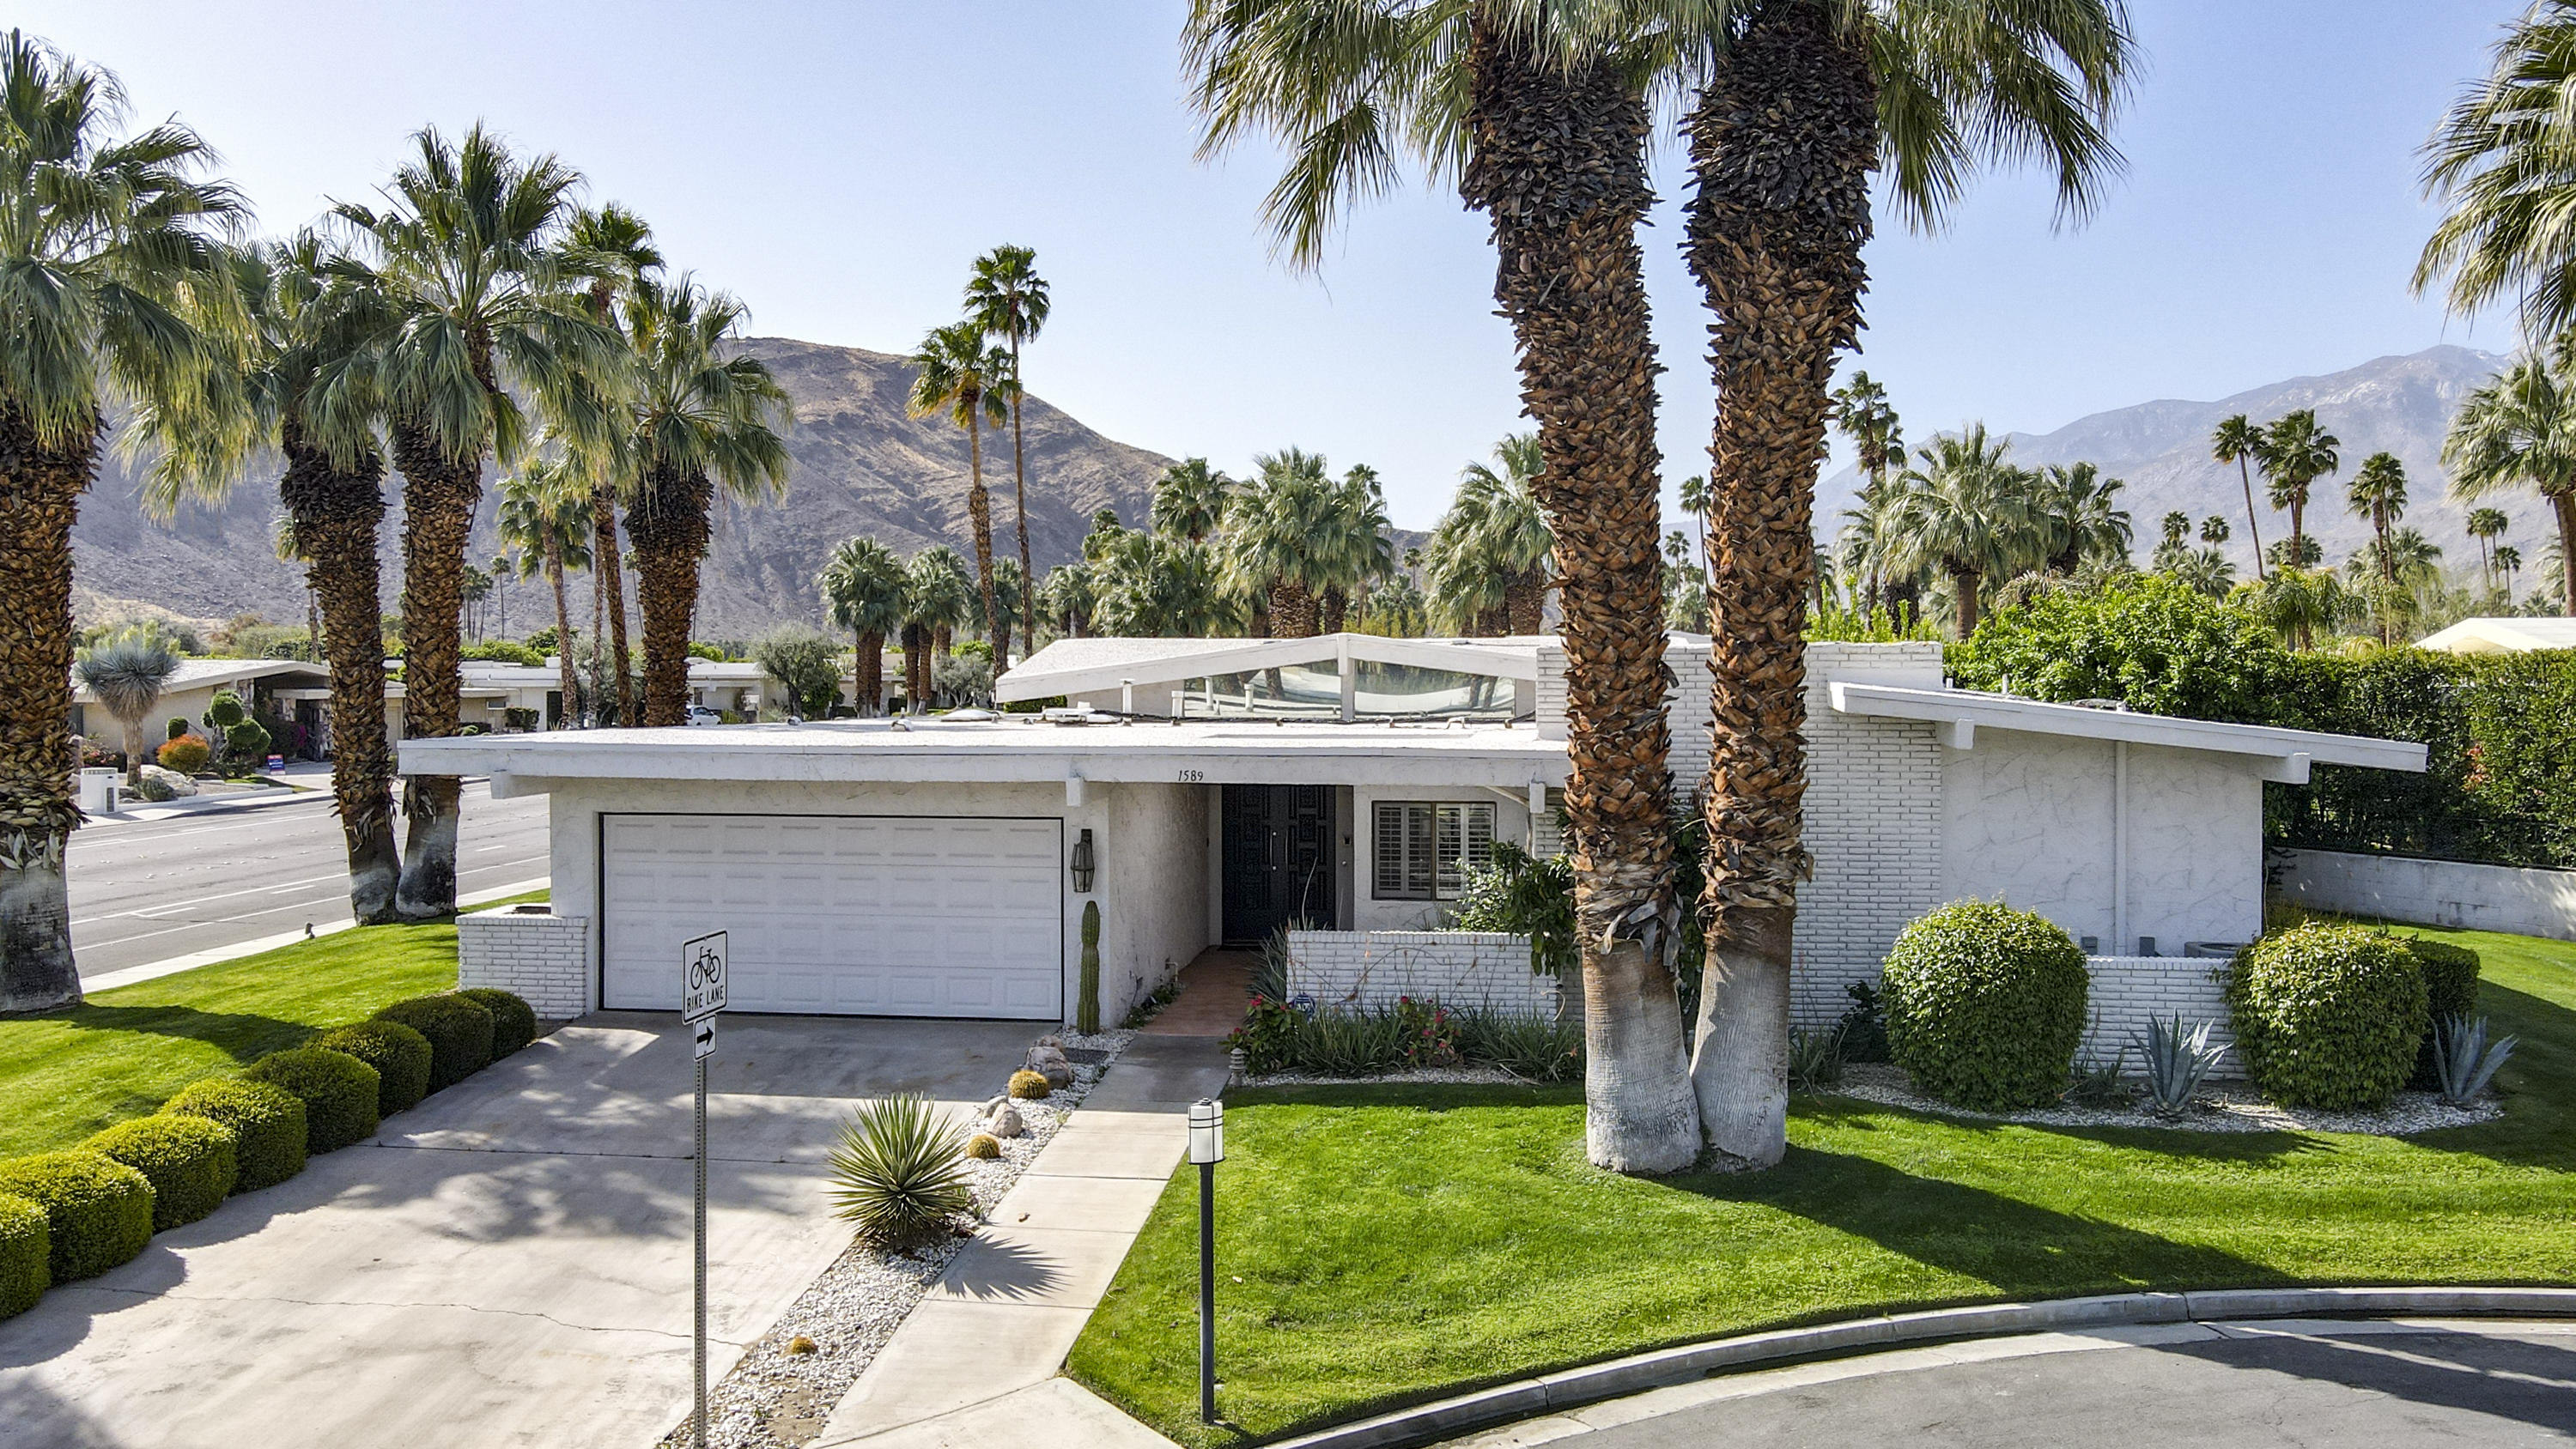 Freestanding and detached Canyon Estates Mid-Century style residence designed by Architect Charles E. Dubois in South Palm Springs. This 3 bed/ 2.5 bath home has been well maintained and is mostly in original condition. Some of the iconic features of his design are expertly represented in this home- clean, simple lines, high ceilings with clerestory windows, open floor plan and ample windows bringing the outdoors in. The living/dining area has high, vaulted ceilings and the classic Palm Springs wet bar. The kitchen features a breakfast area, skylight and interior laundry area. With two large ensuite master bedrooms, one with direct access to the covered patio, both have walk-in closets, updated bathrooms with separate shower & tub and dual sinks. A third bedroom is possible, but currently used as a family/media room with gas/ wood burning fireplace. The property is complete with a large corner location, on a cul-de sac and has a private patio with numerous up lit fruit trees and mountain views.  Canyon Estates has 15 pools, 12 spas, tennis courts, a 9-hole executive golf course, and renovated clubhouse with gym/weight rooms. Long term, reasonable land lease through 2063